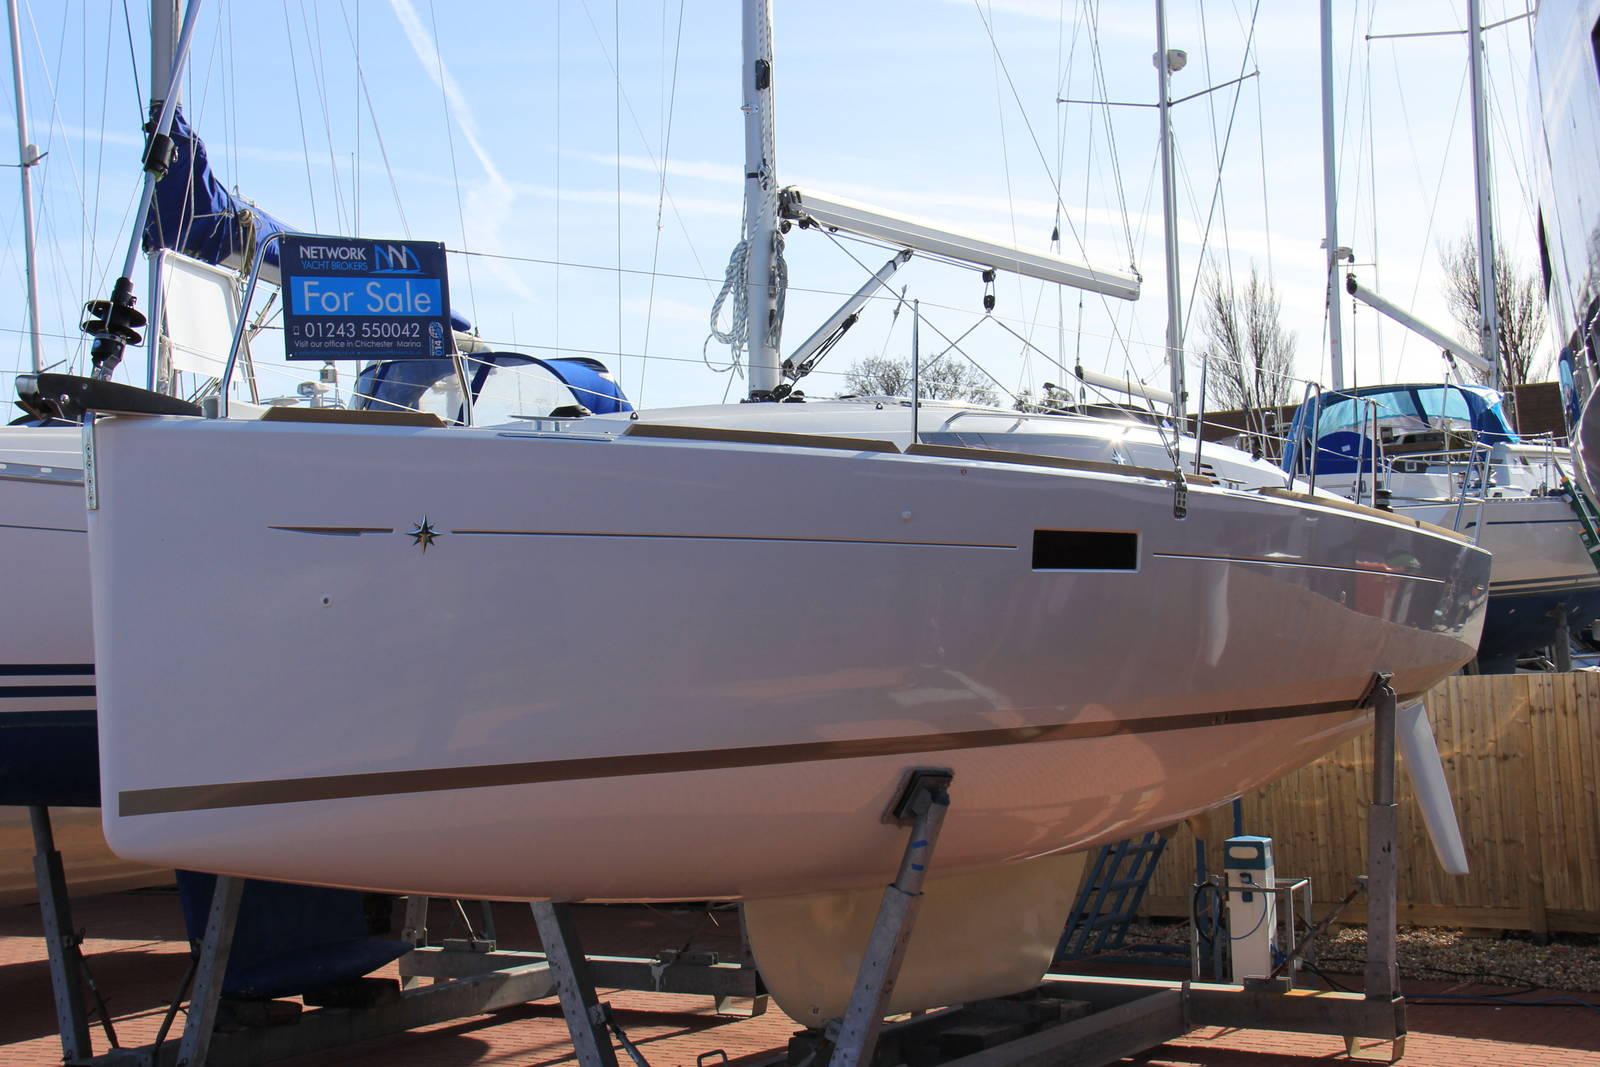 Jeanneau Sun Odyssey 349 2018 Cruising Yacht For Sale In Chichester